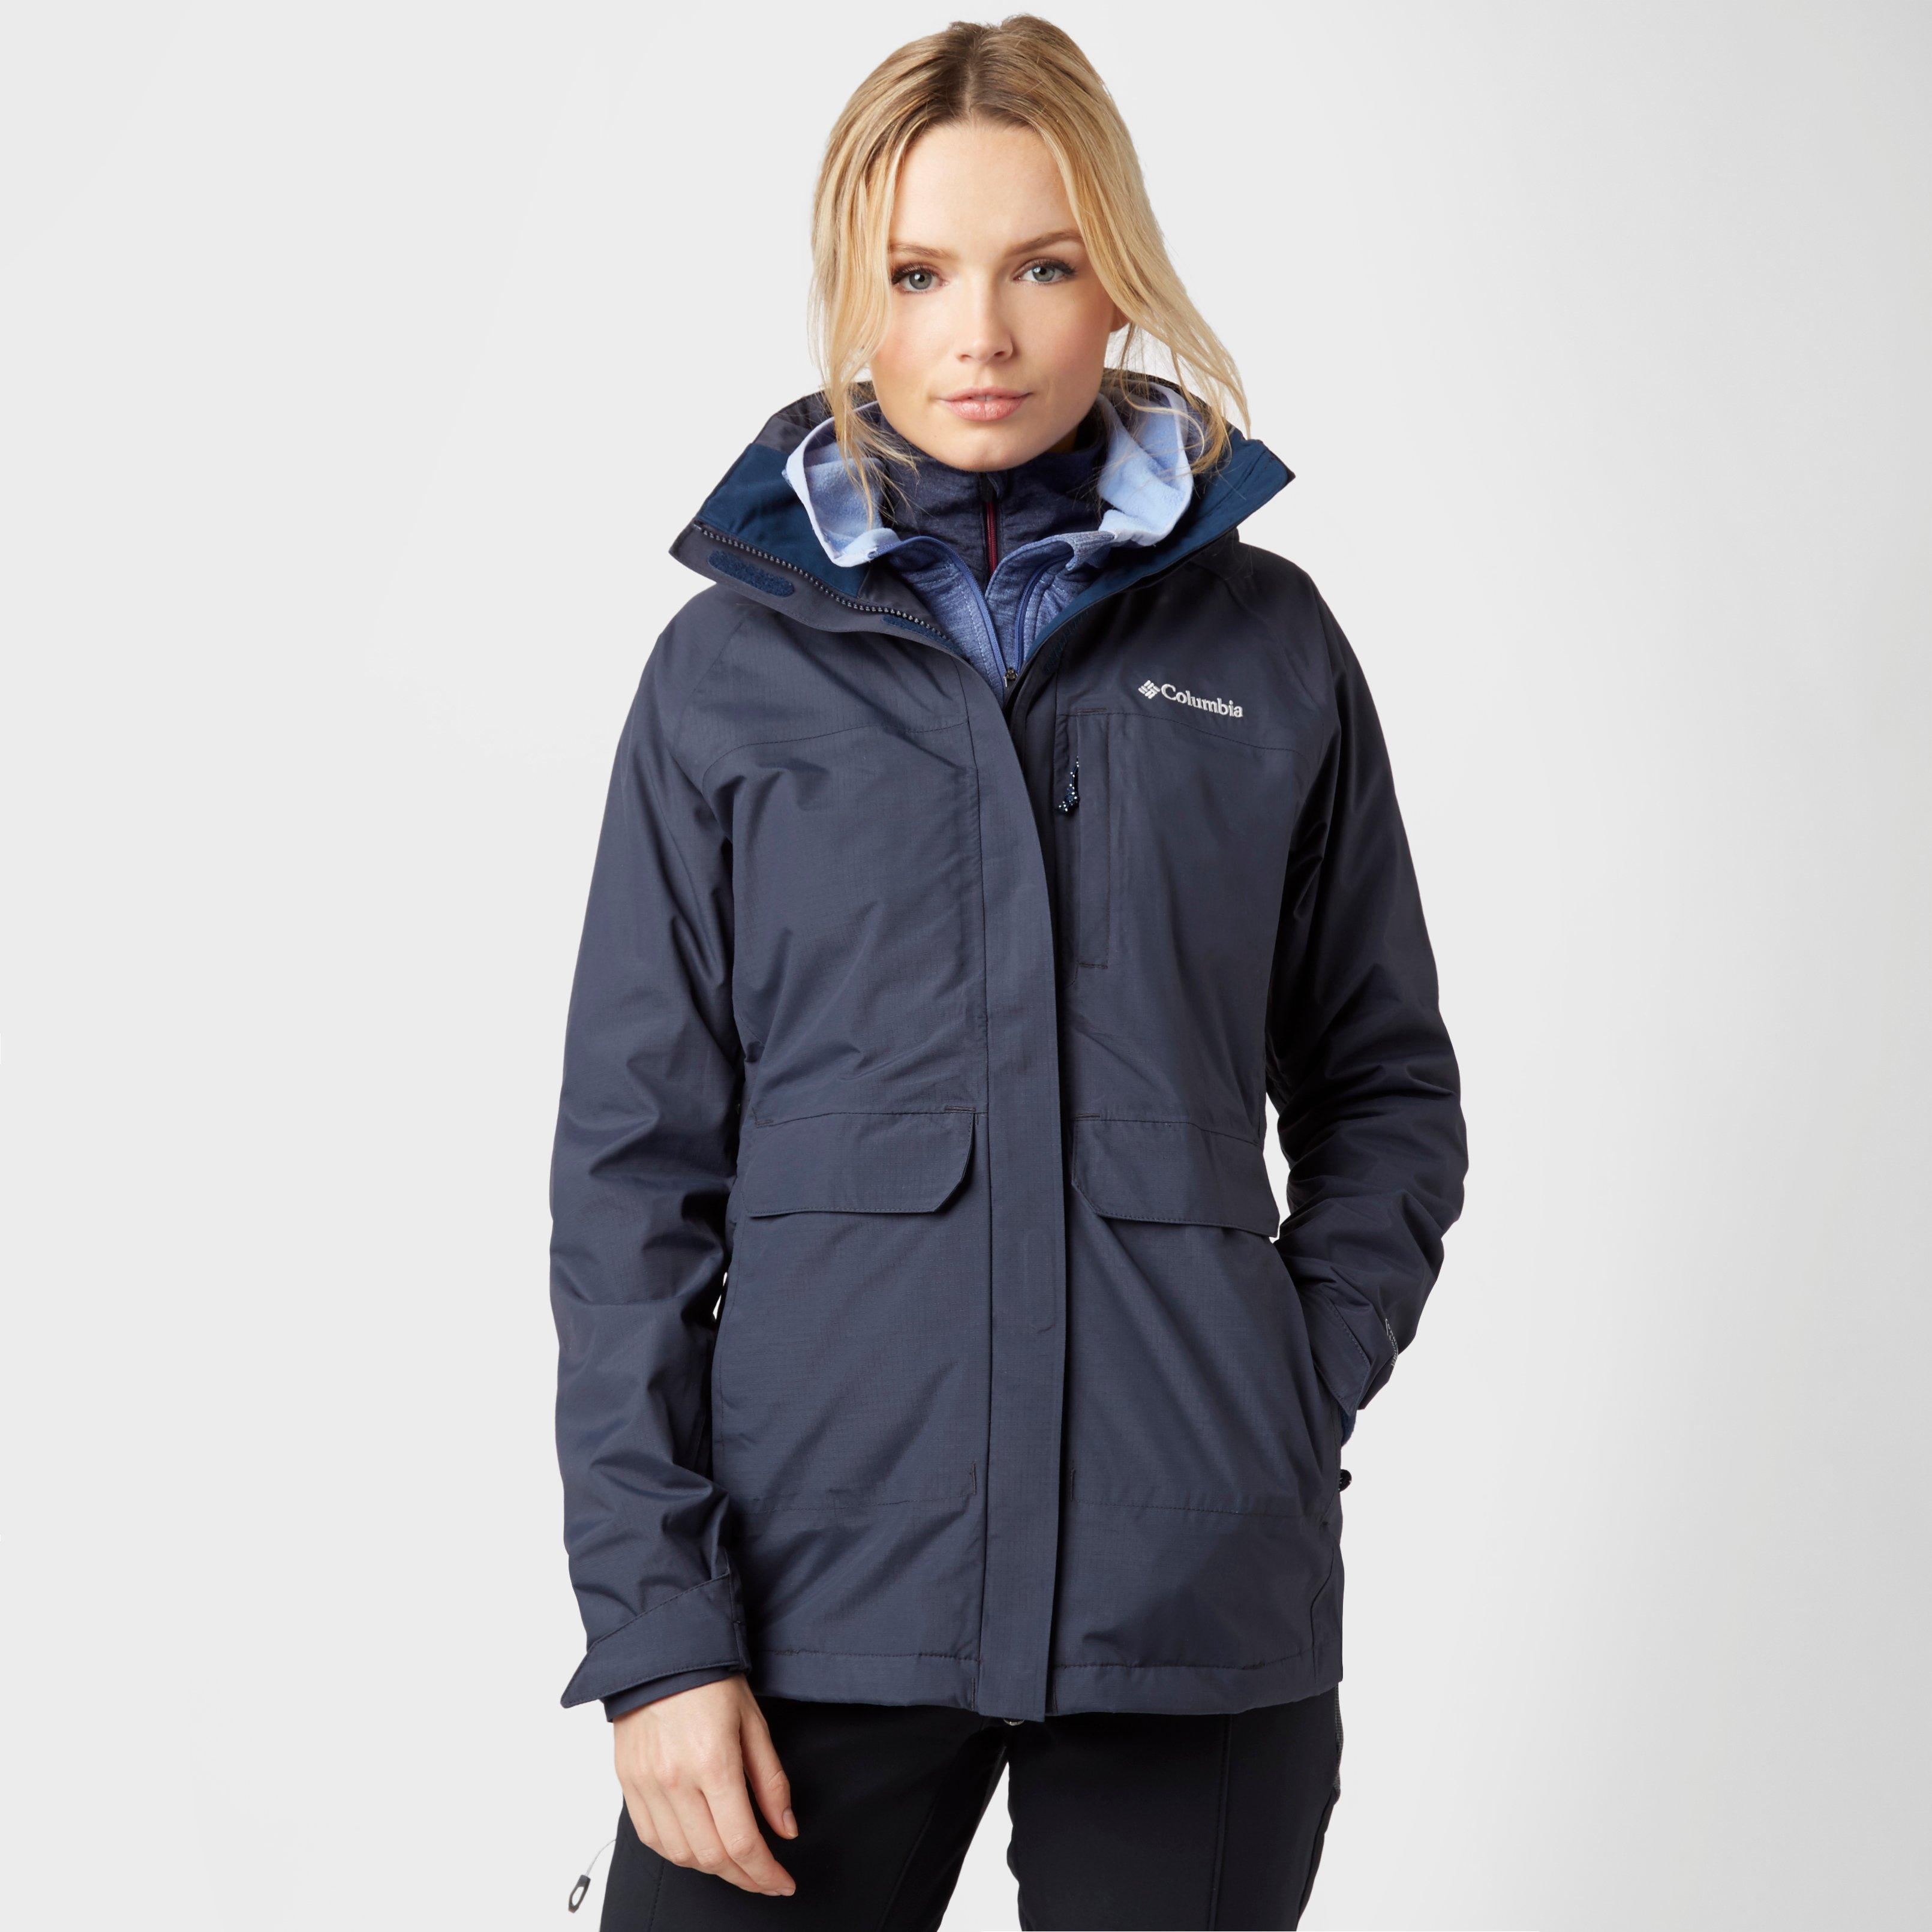 Columbia Archives Jacket Compare Compare Outdoor